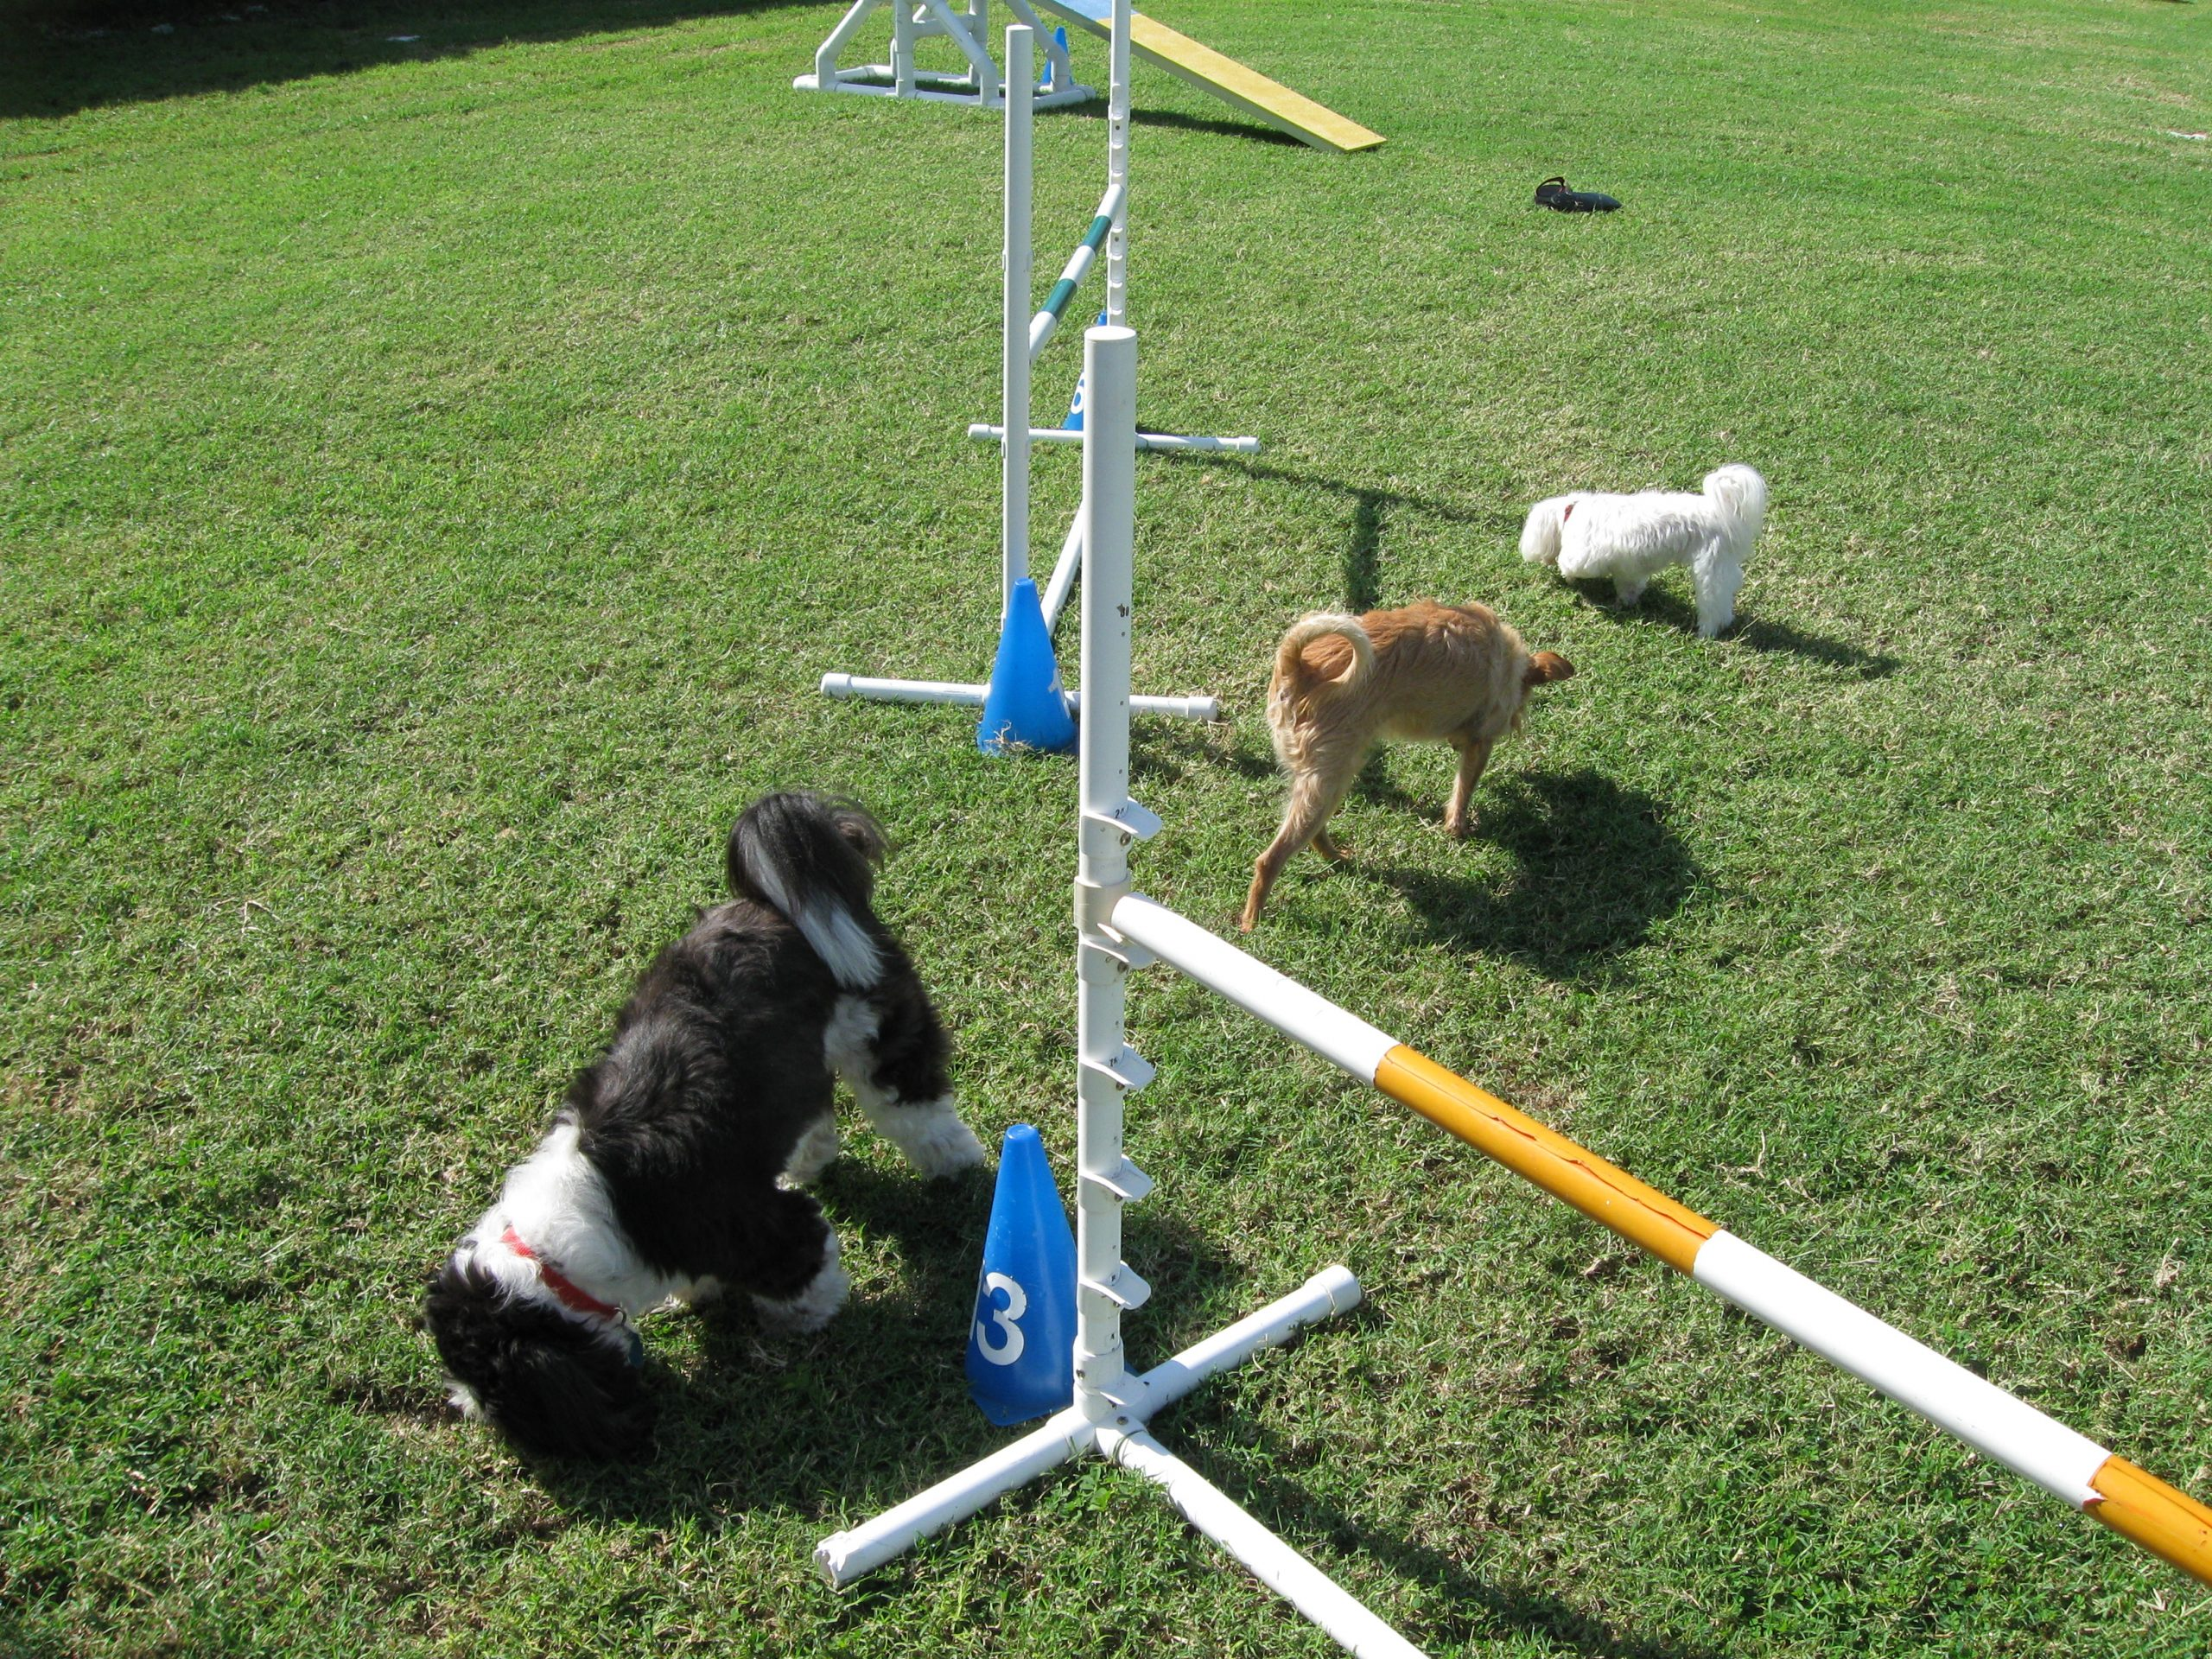 Dogs in agility training